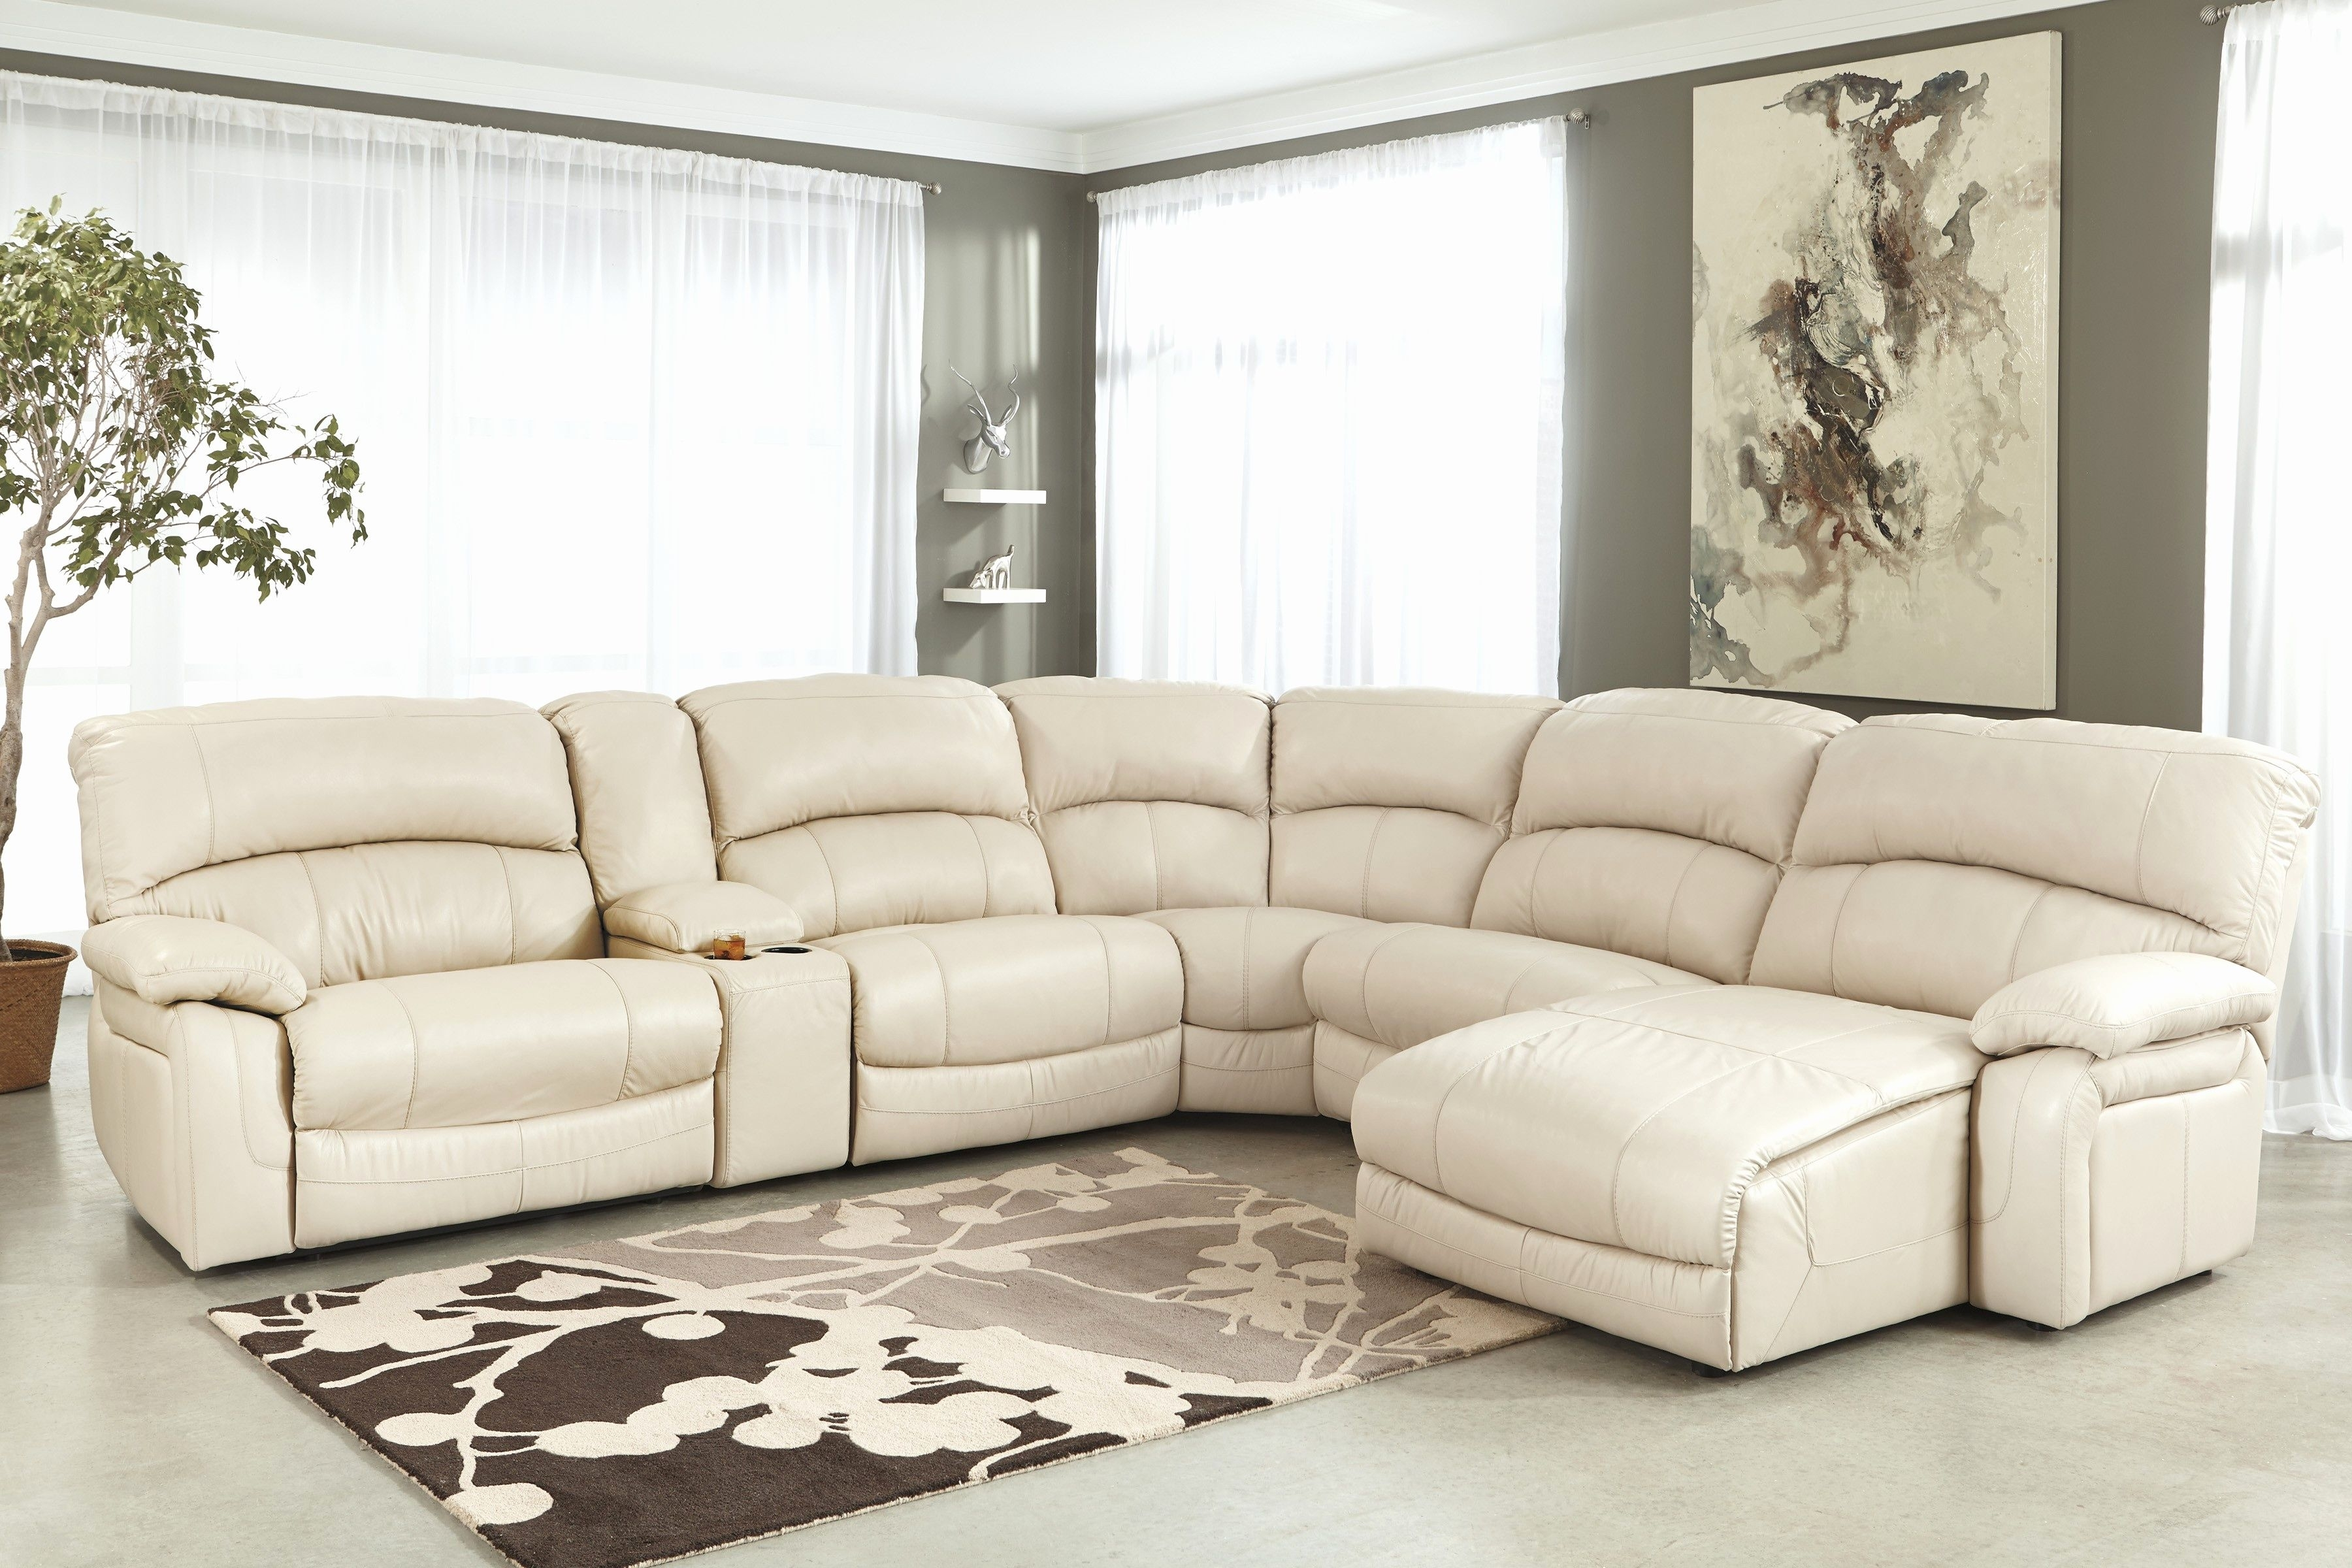 New Cream Sectional Sofa Pics Cream Leather Sectional Sofa With Intended For Marcus Chocolate 6 Piece Sectionals With Power Headrest And Usb (Image 16 of 25)